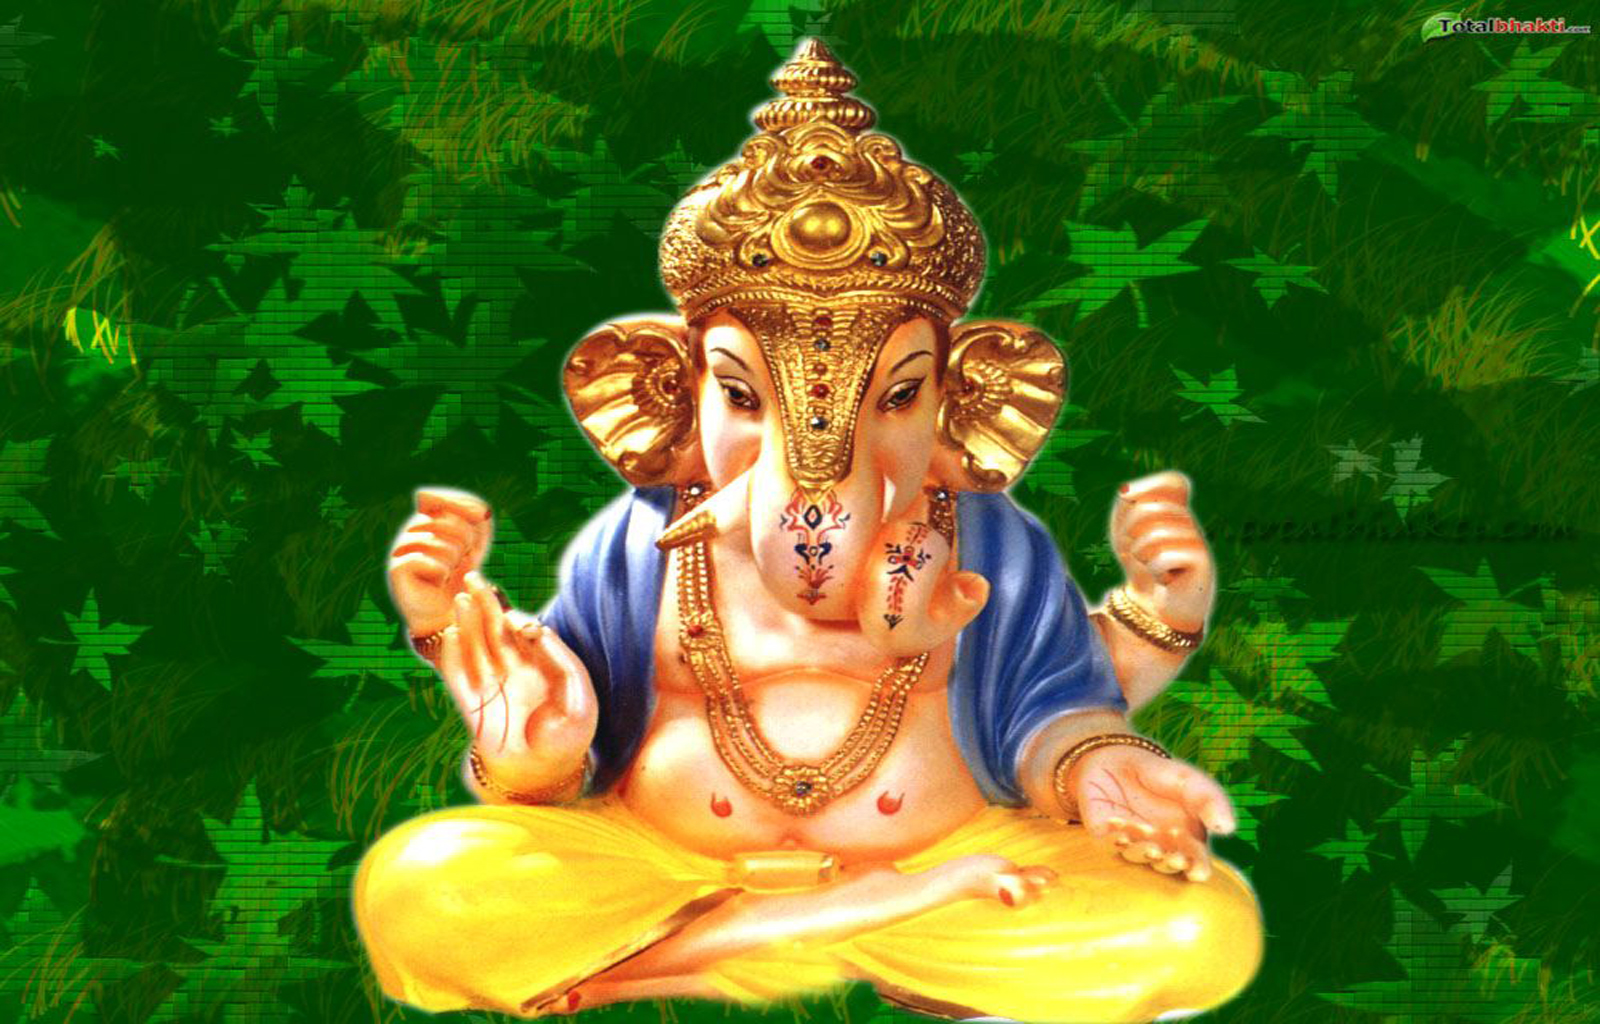 Lord ganesh wallpaper free ganesha pictures hd ganapati photos